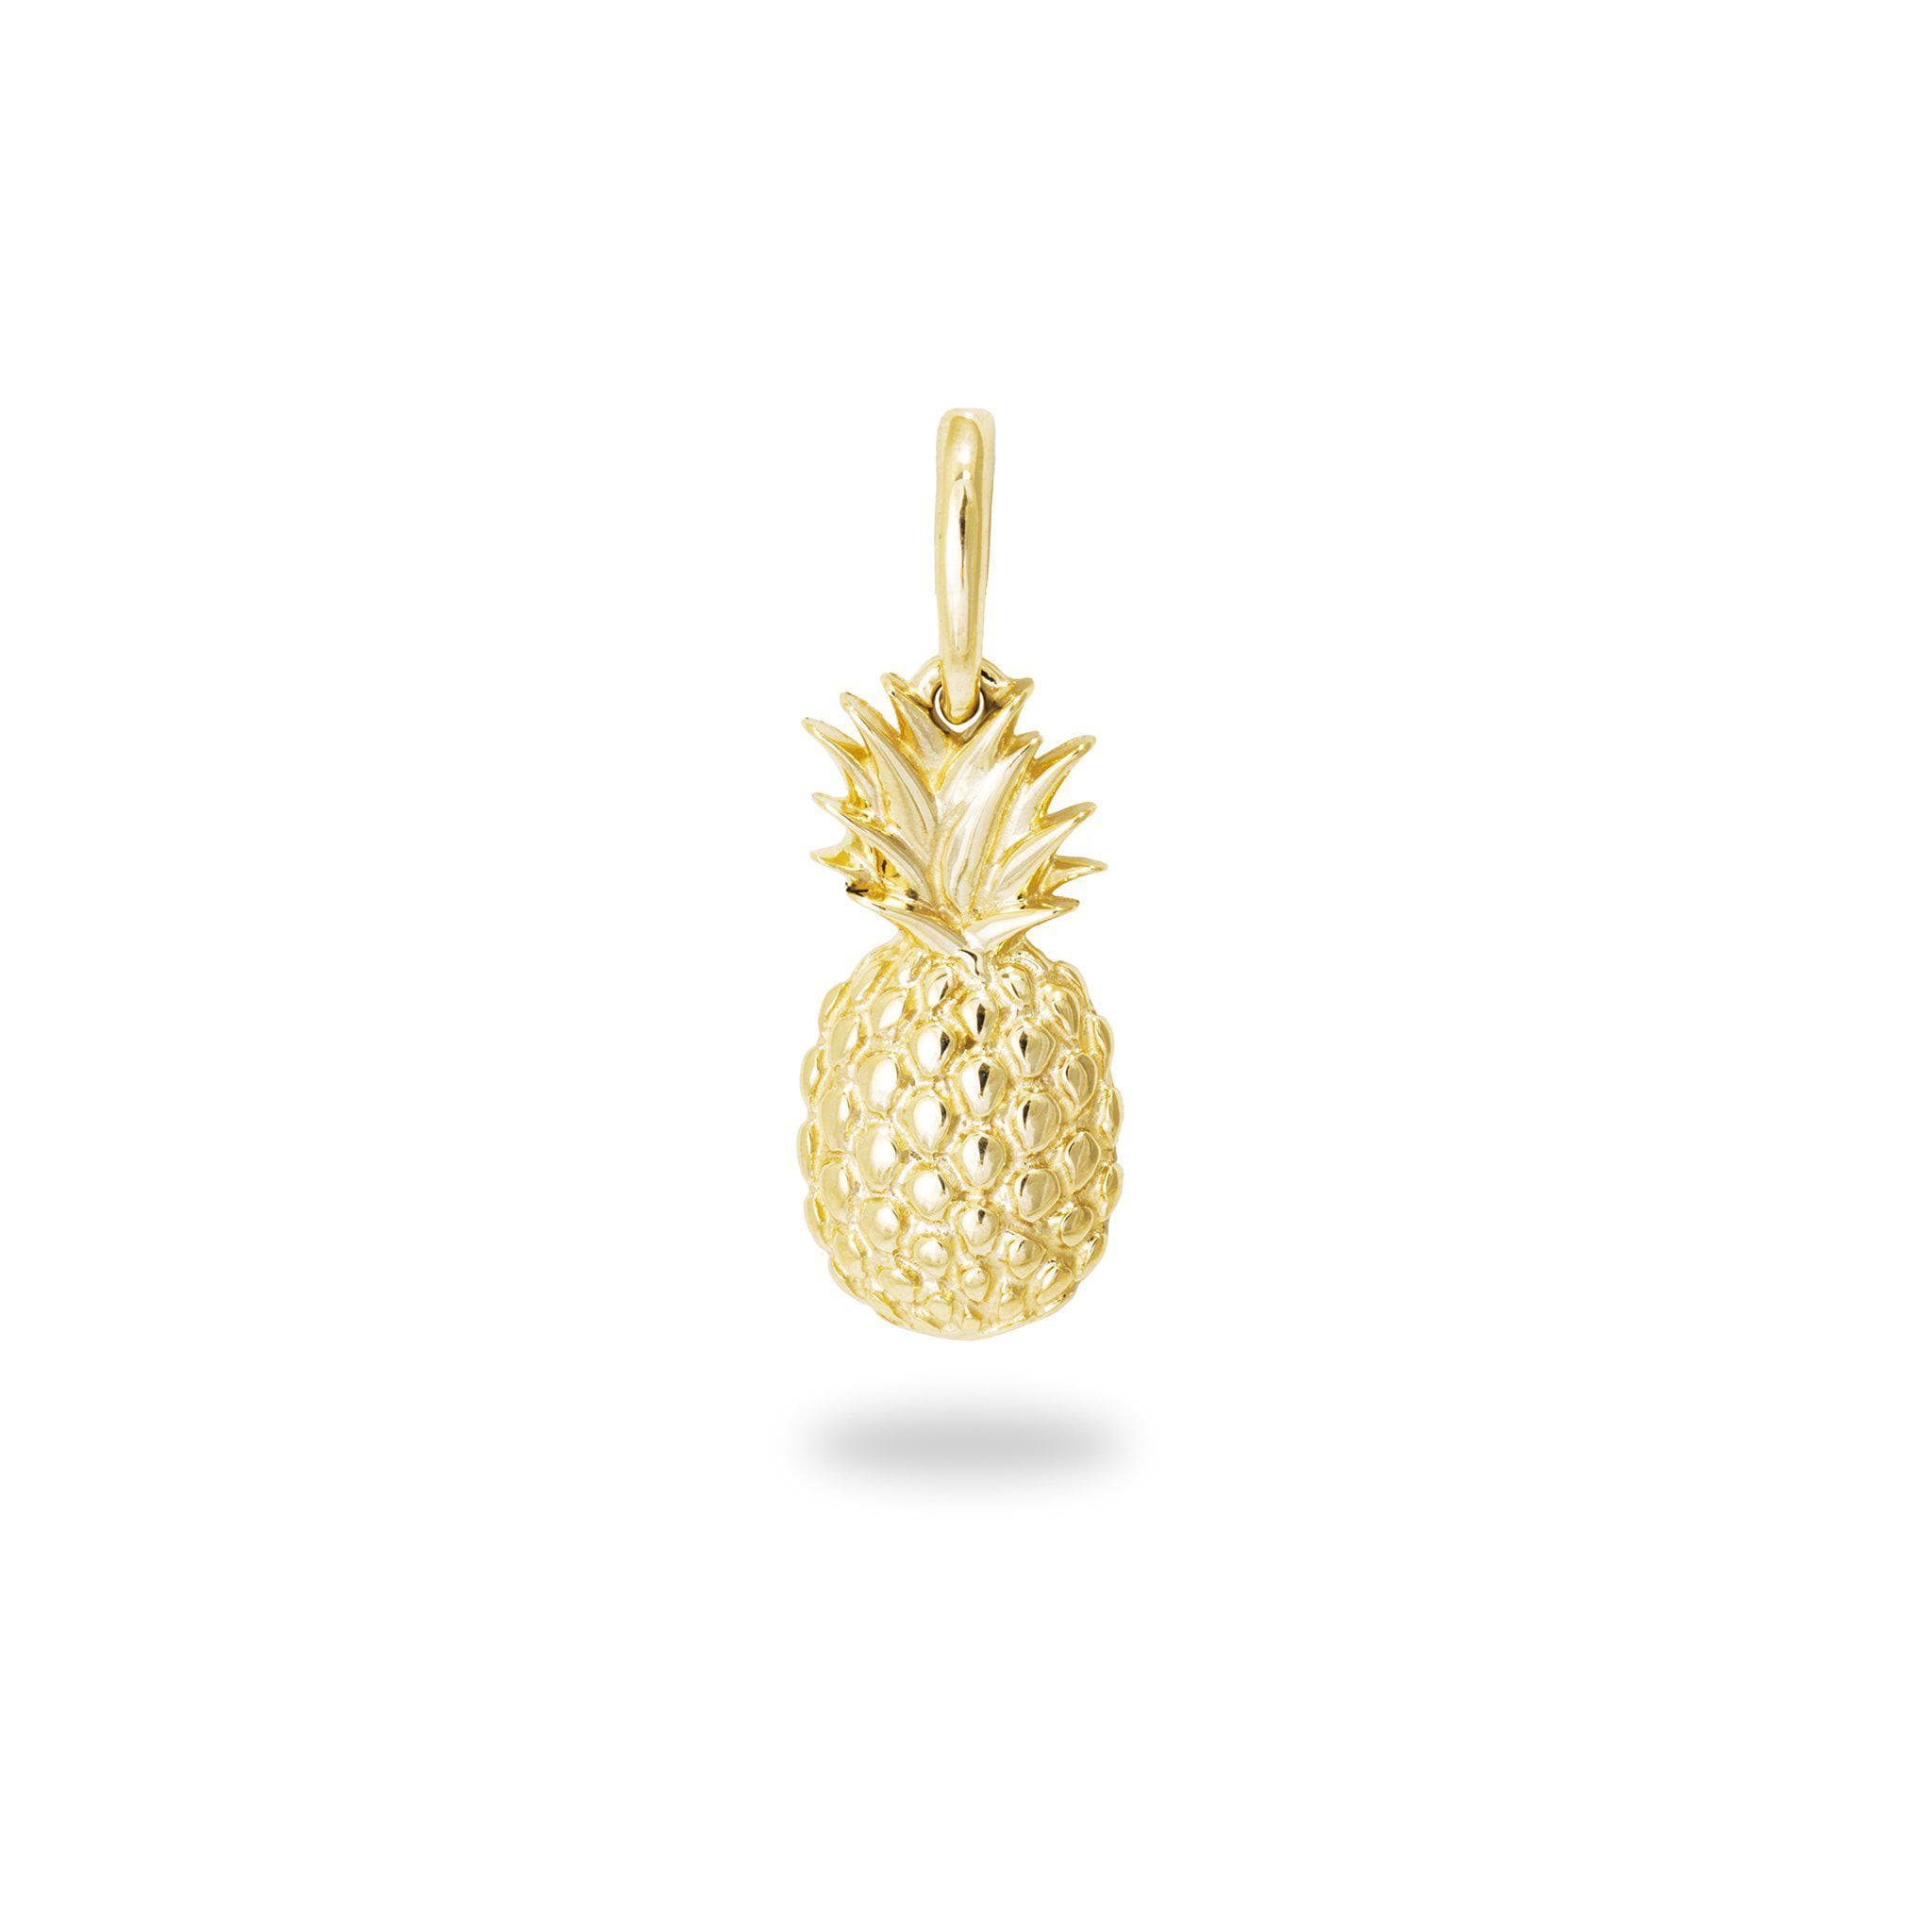 pineapple image products london sixton necklace